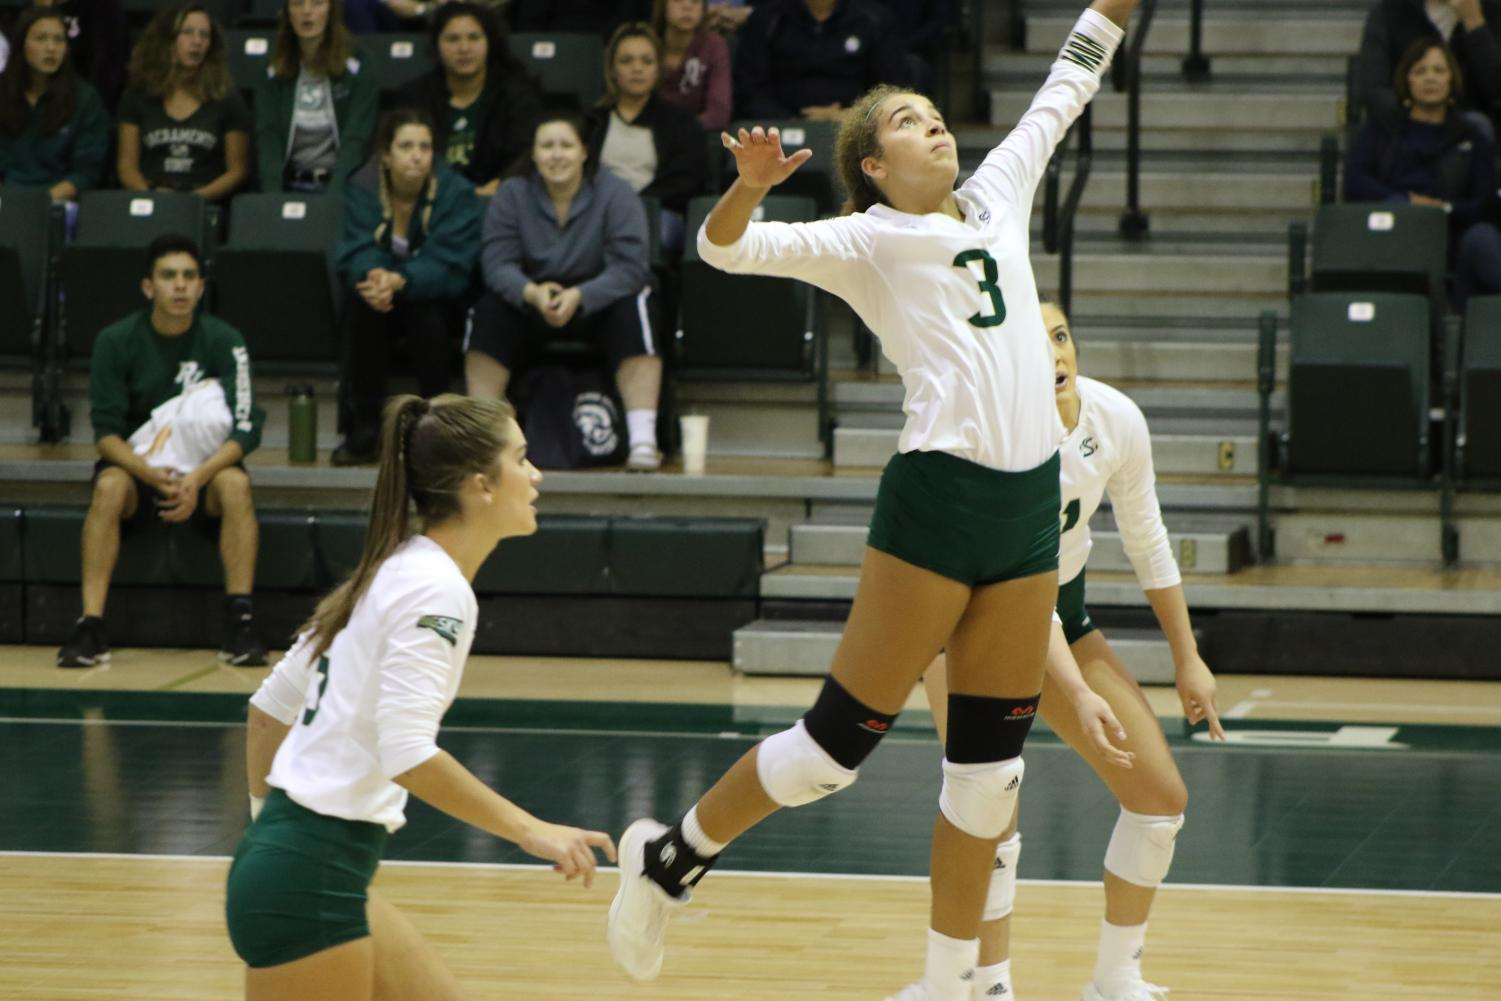 Sac State junior outside hitter Macey Hayden prepares to spike the ball against Weber State Thursday, Nov. 14 at the Nest. The Hornets were eliminated in the quarterfinals of the Big Sky Tournament by Montana State on Thursday, Nov. 28.